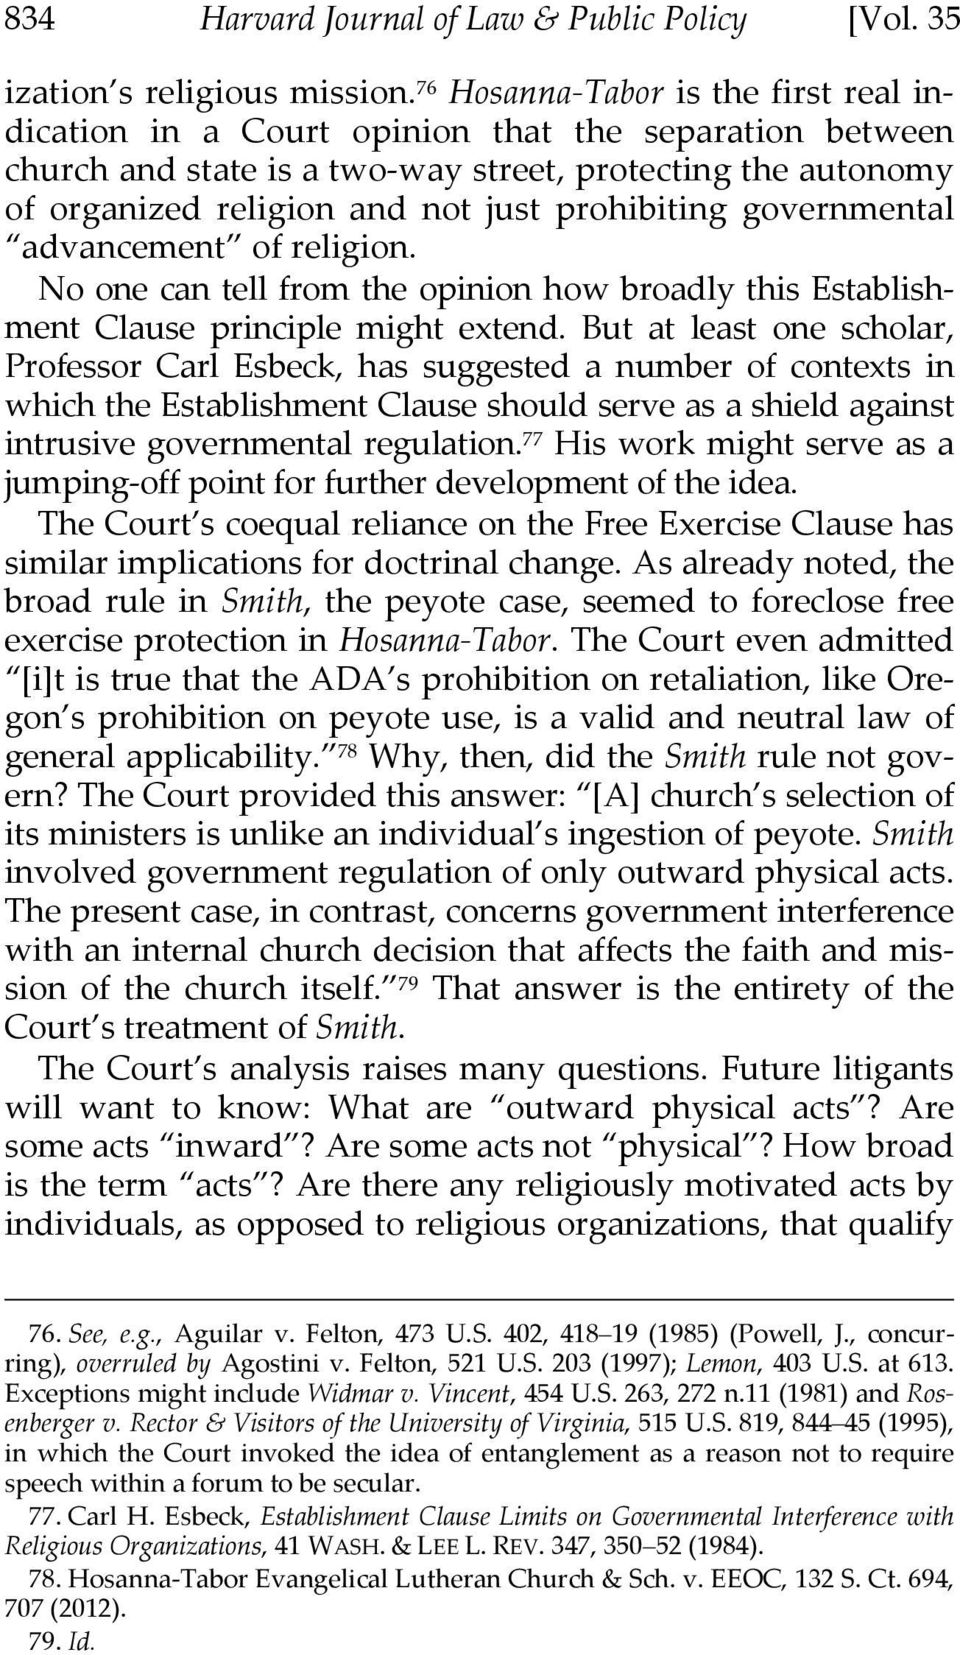 prohibiting governmental advancement of religion. No one can tell from the opinion how broadly this Establishment Clause principle might extend.